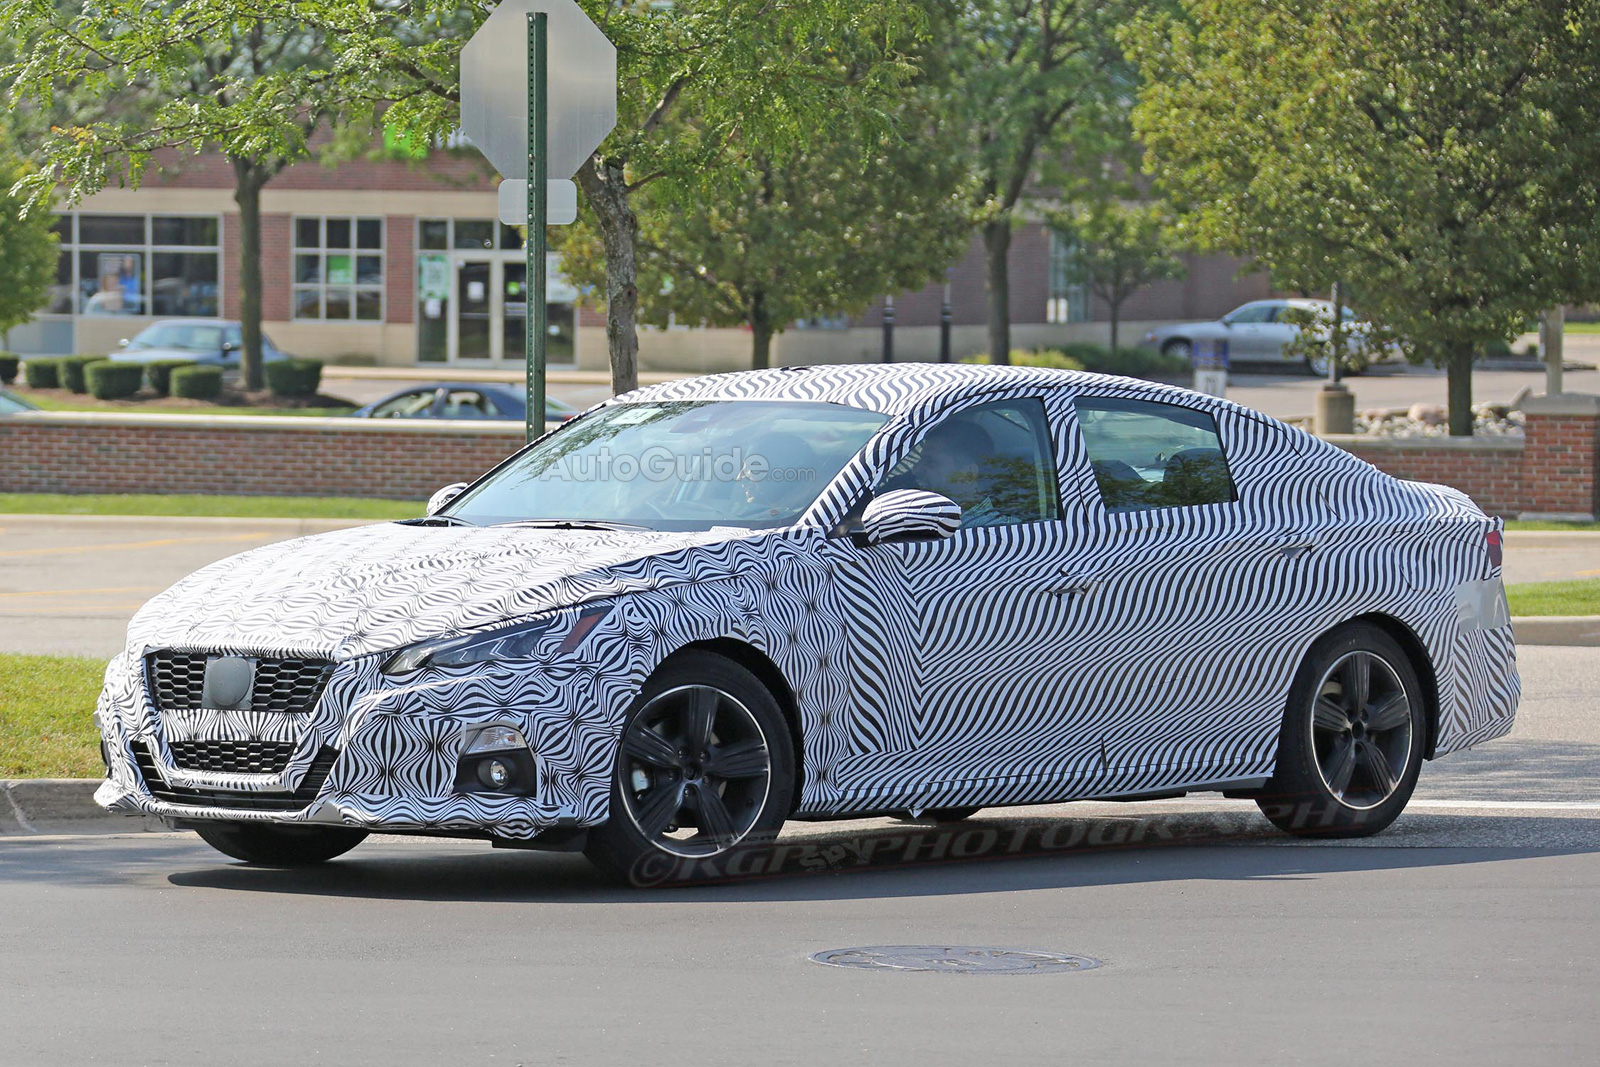 2019 Nissan Altima S New Look Revealed In Spy Photos Autoguide